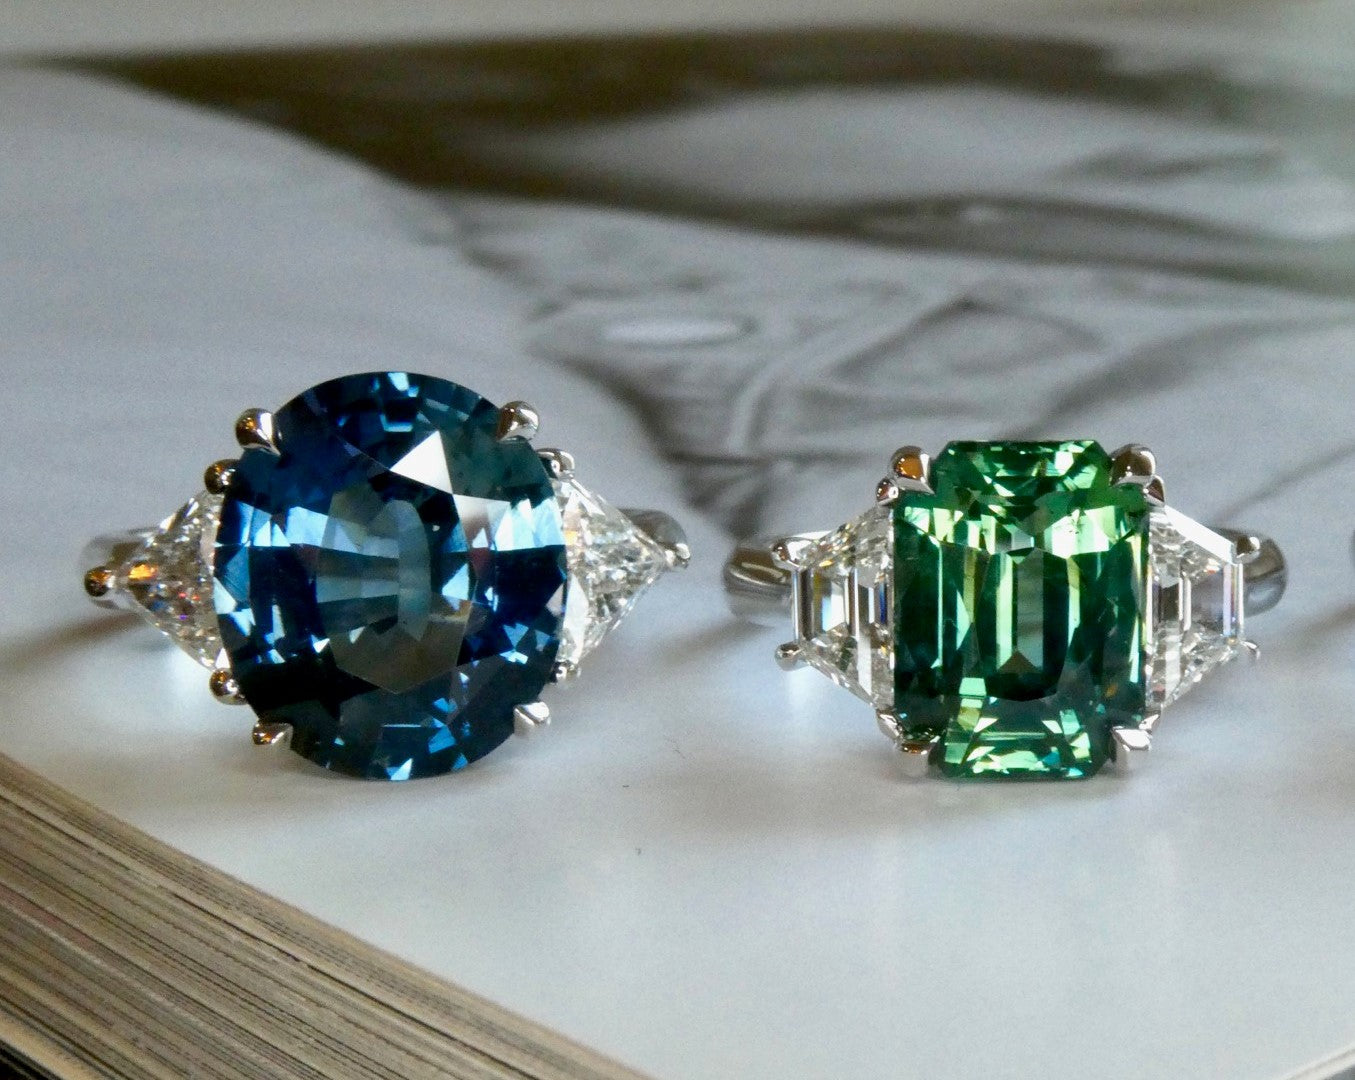 New sapphire and platinum engagement rings by Dana Walden Bridal